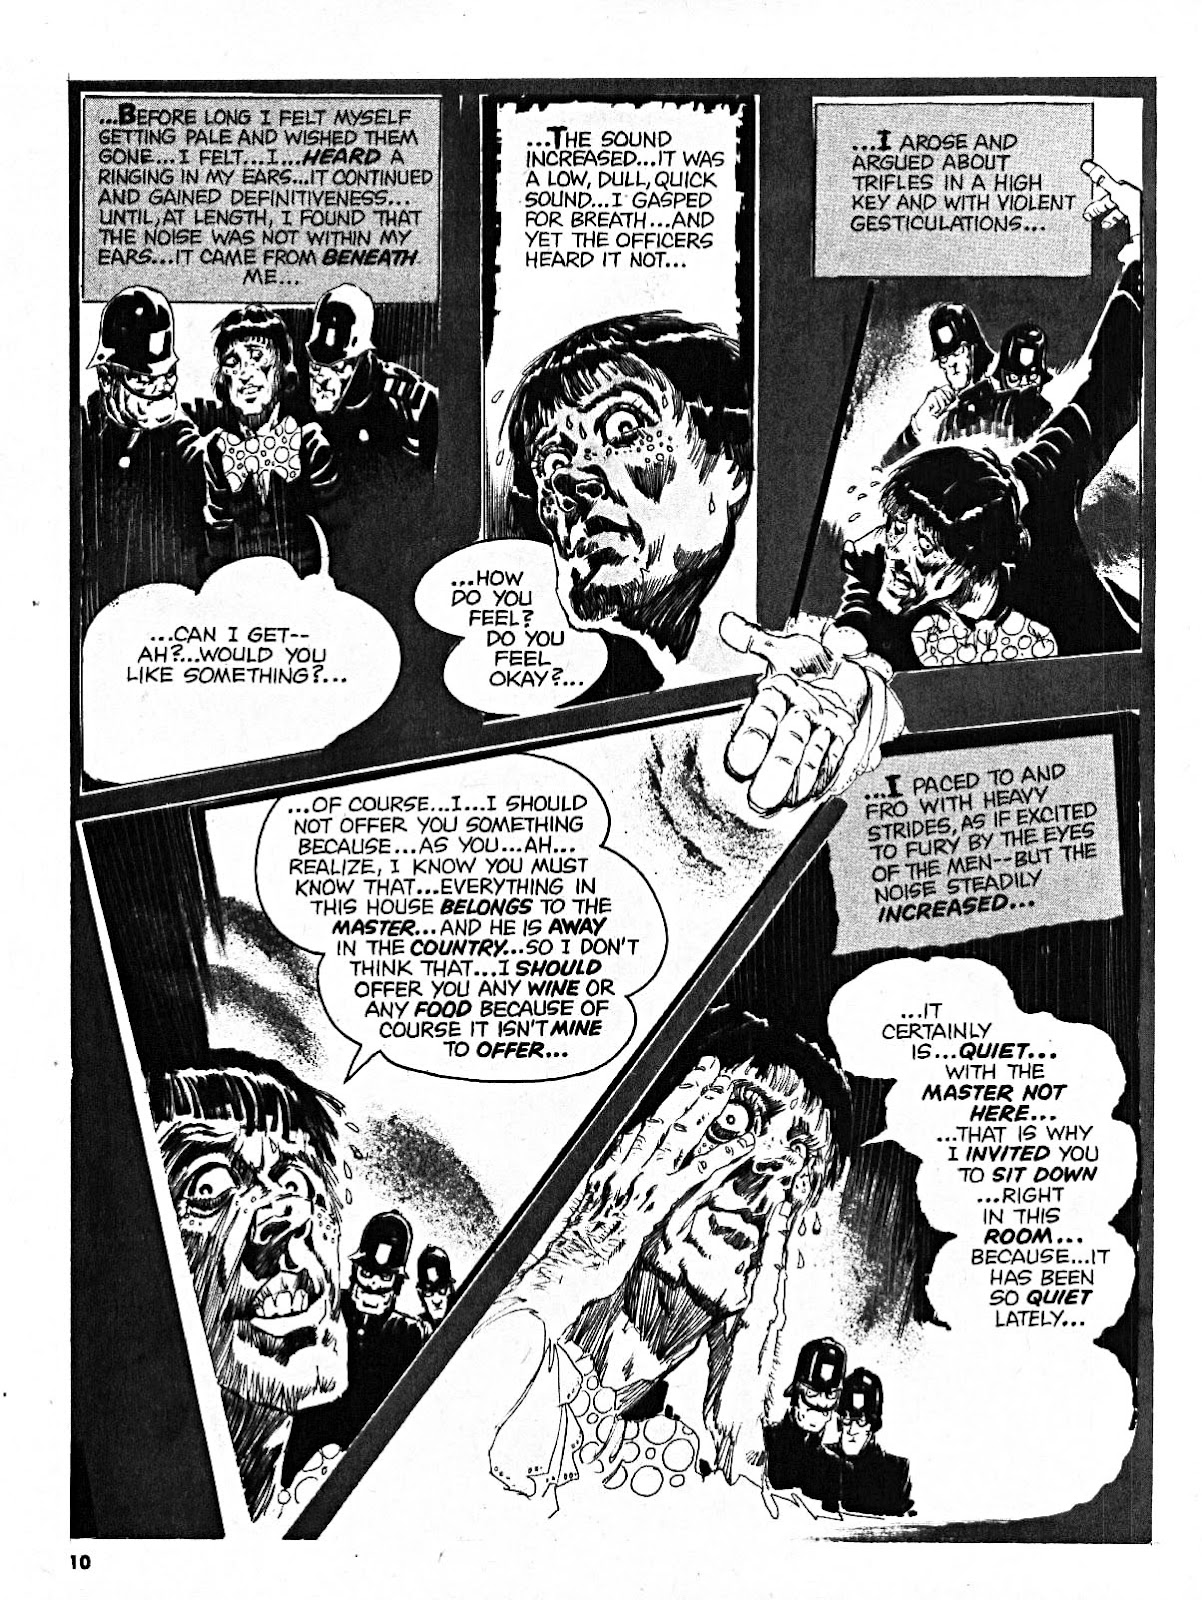 Scream (1973) issue 8 - Page 10